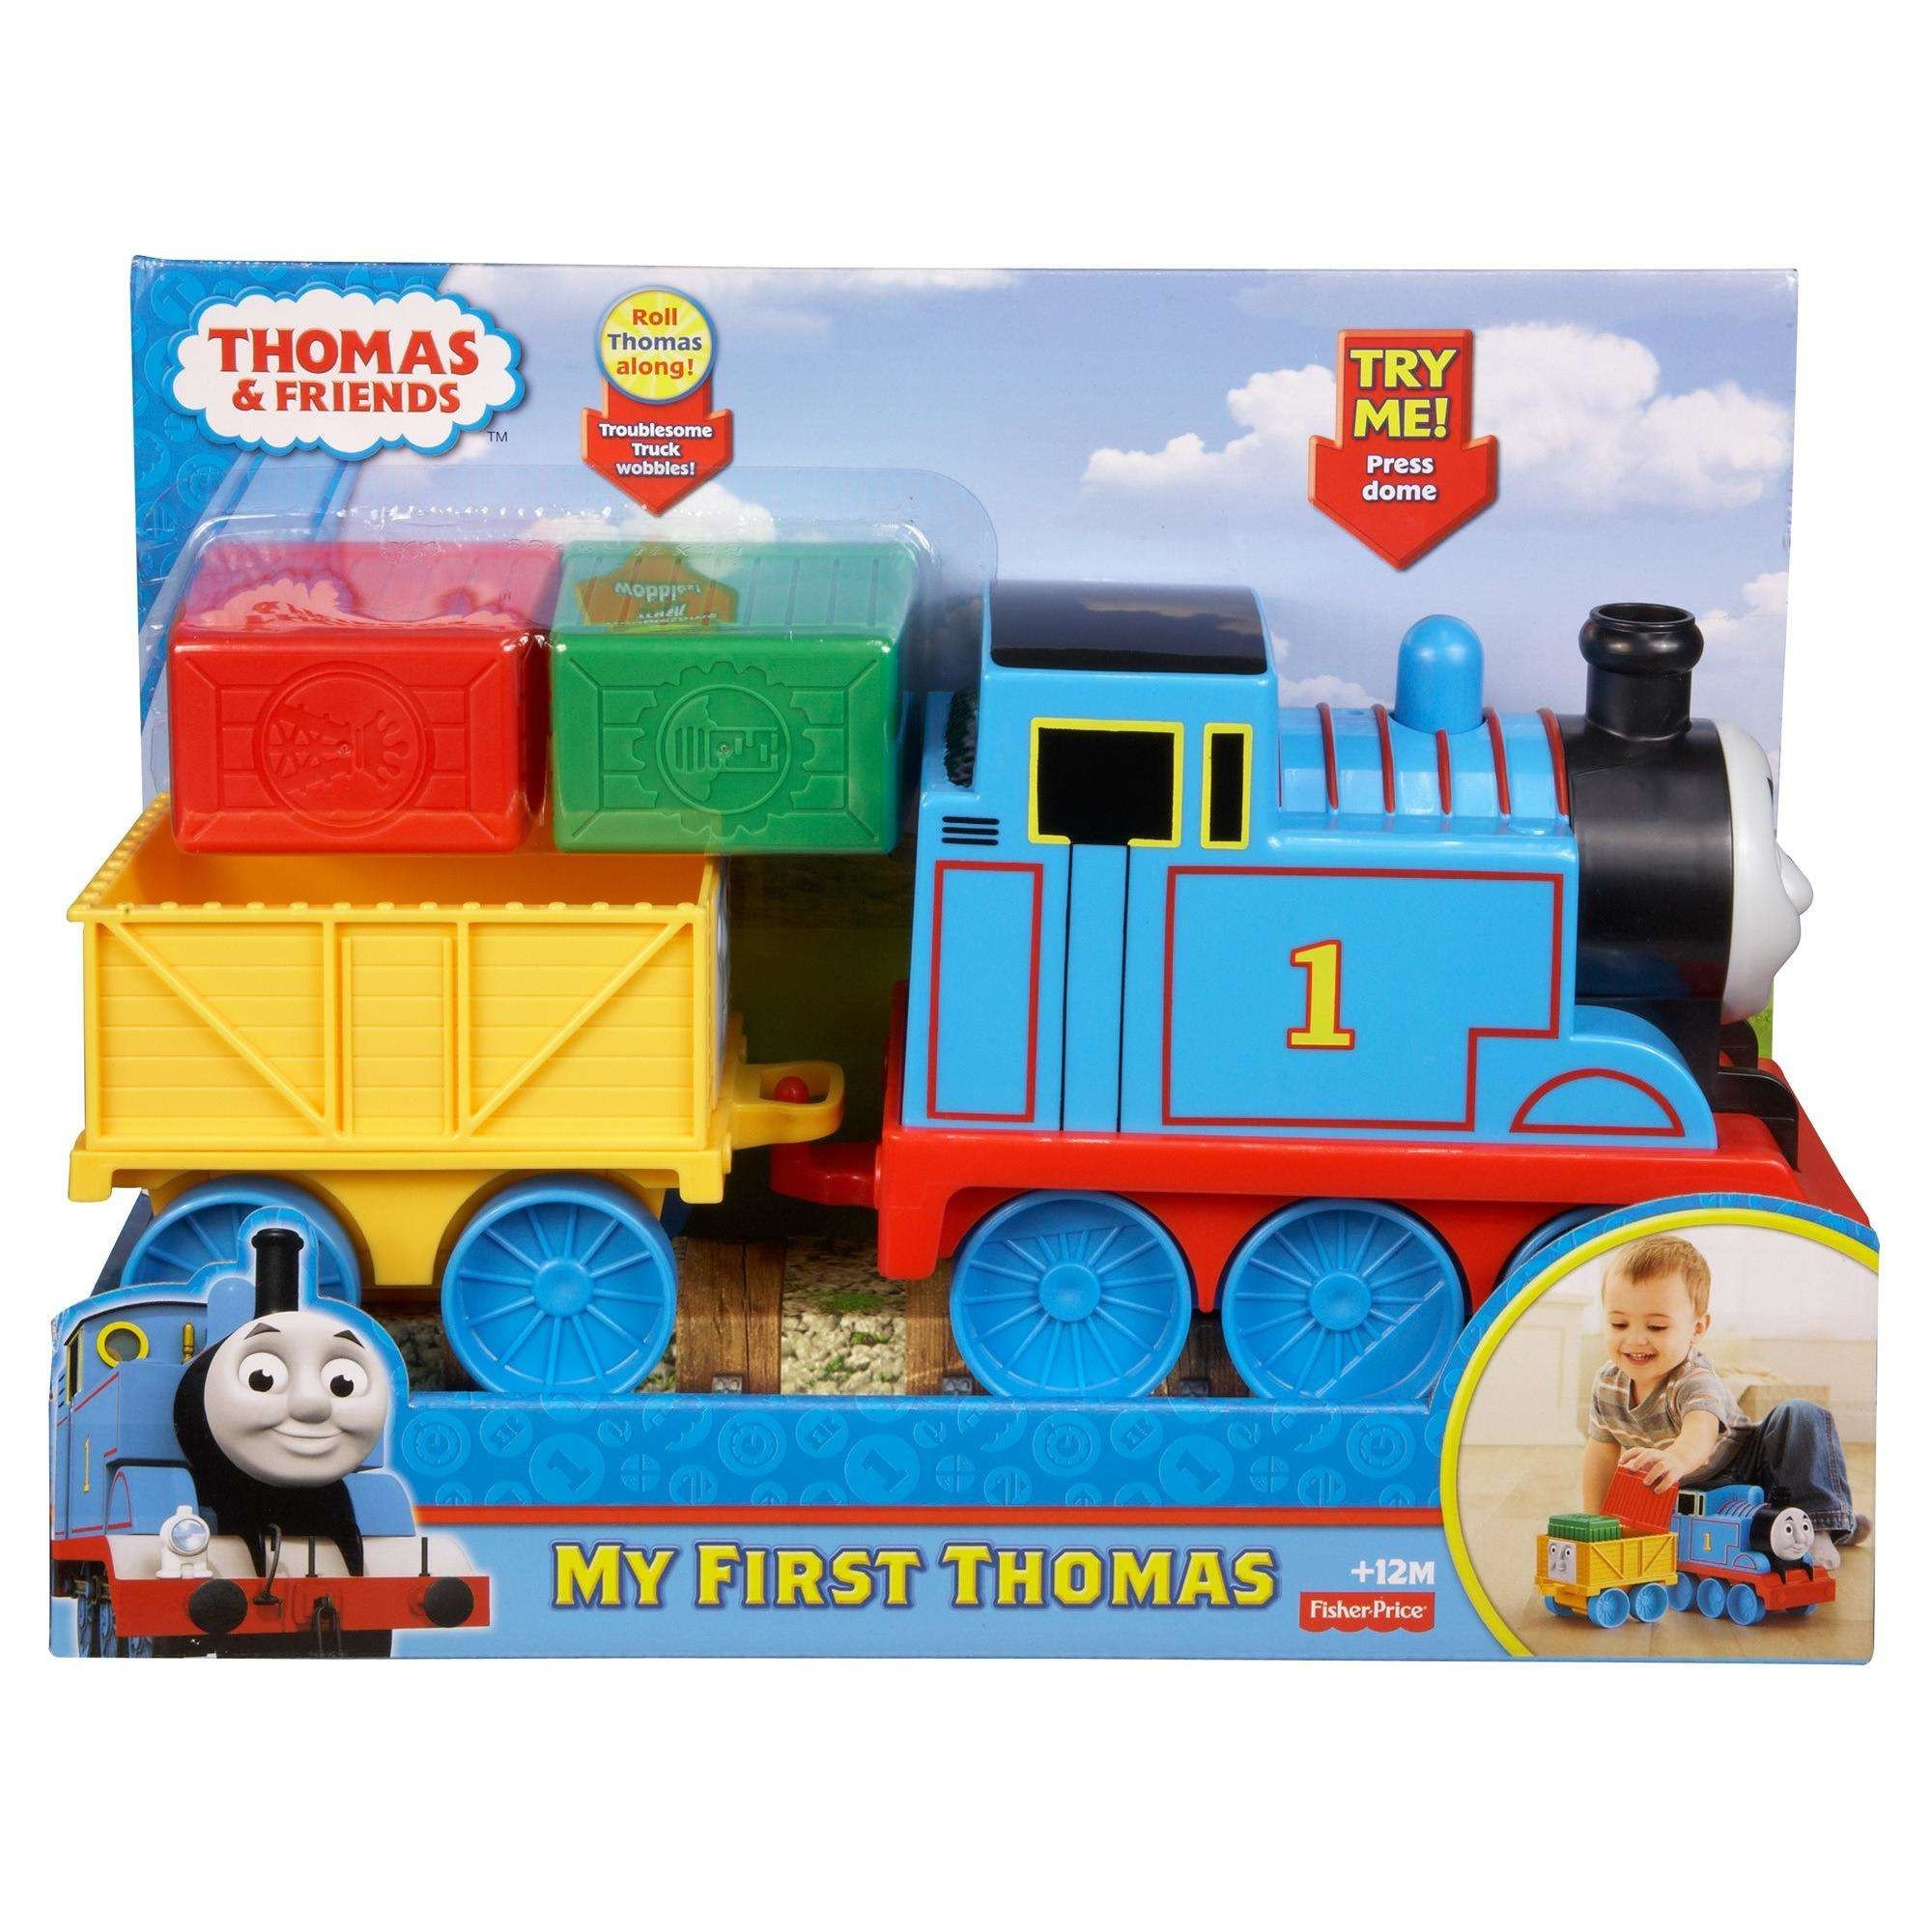 Thomas the Train Bedroom Decor Lovely Thomas & Friends My First Thomas Scale Train Engine